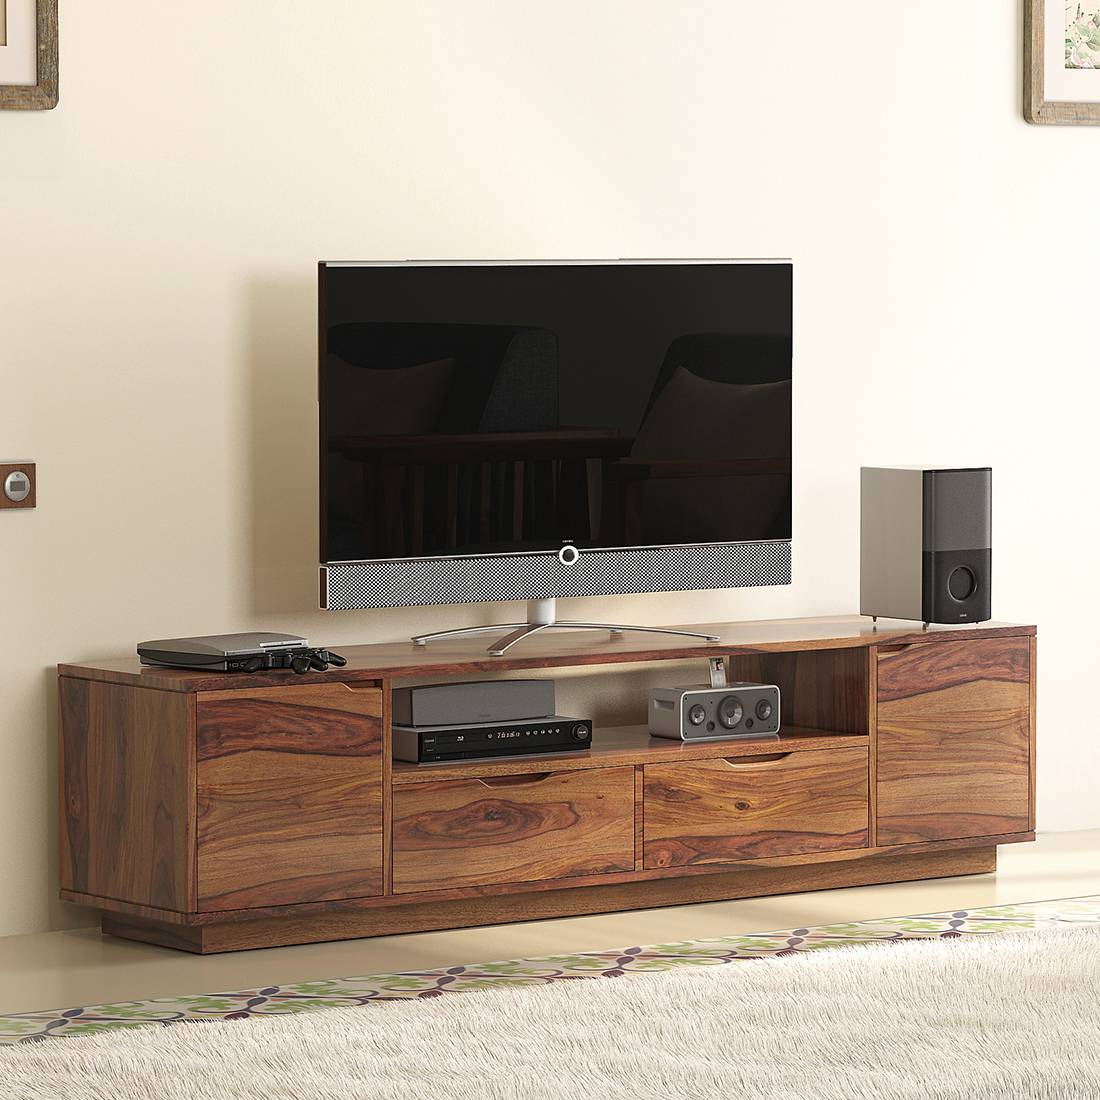 tv units for home 2021 designs